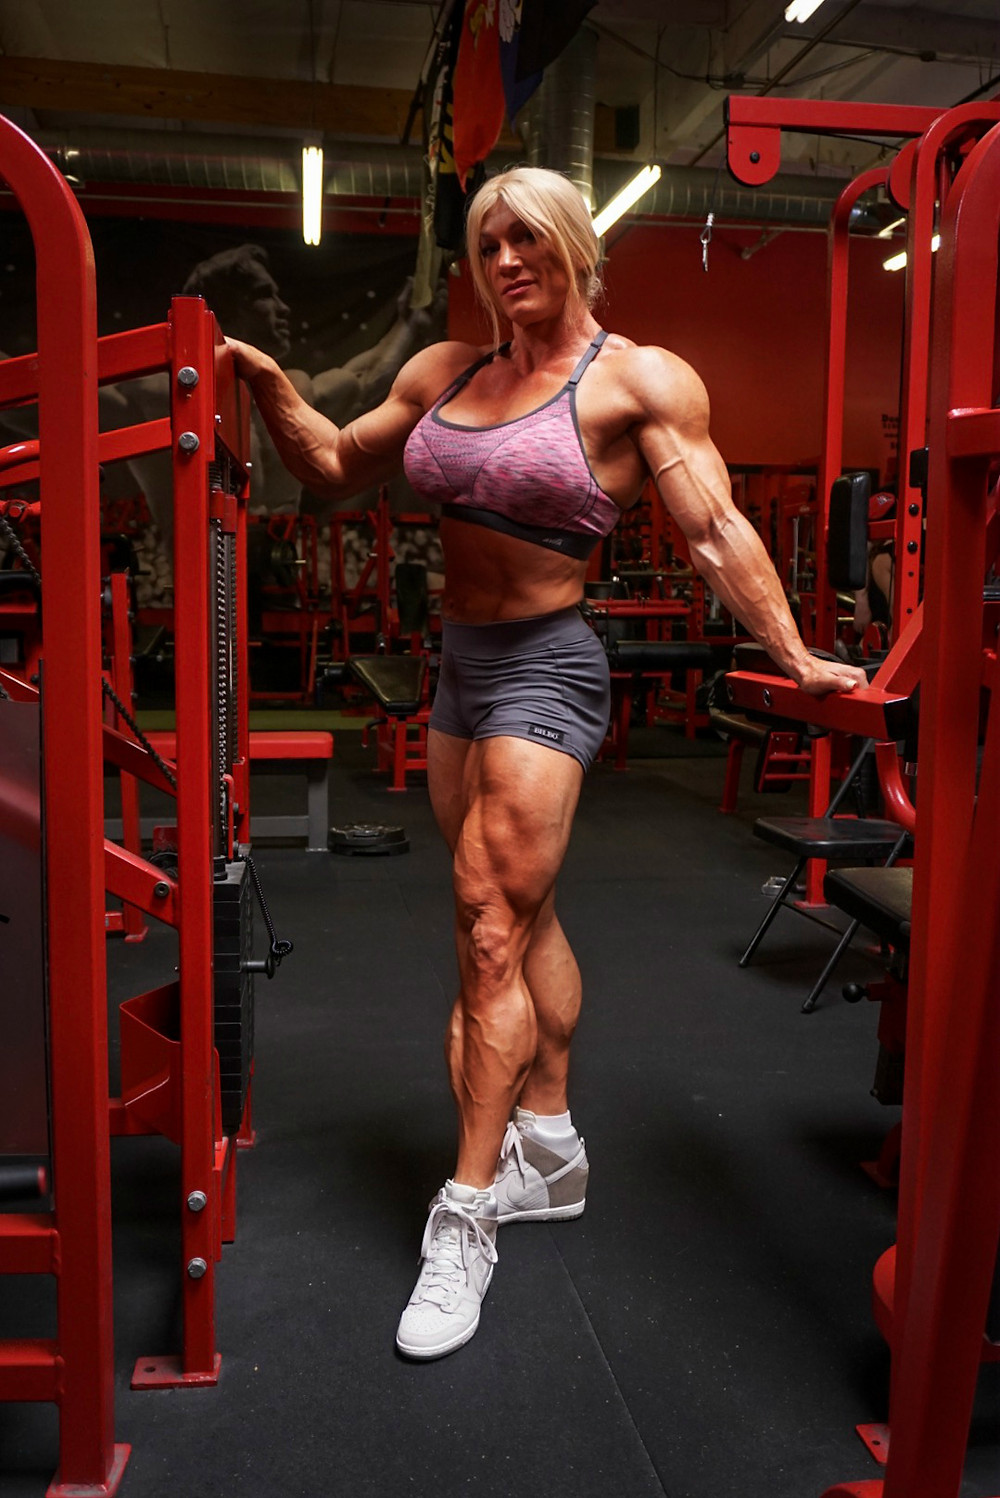 #bodybuilder #muscles #legs #strong